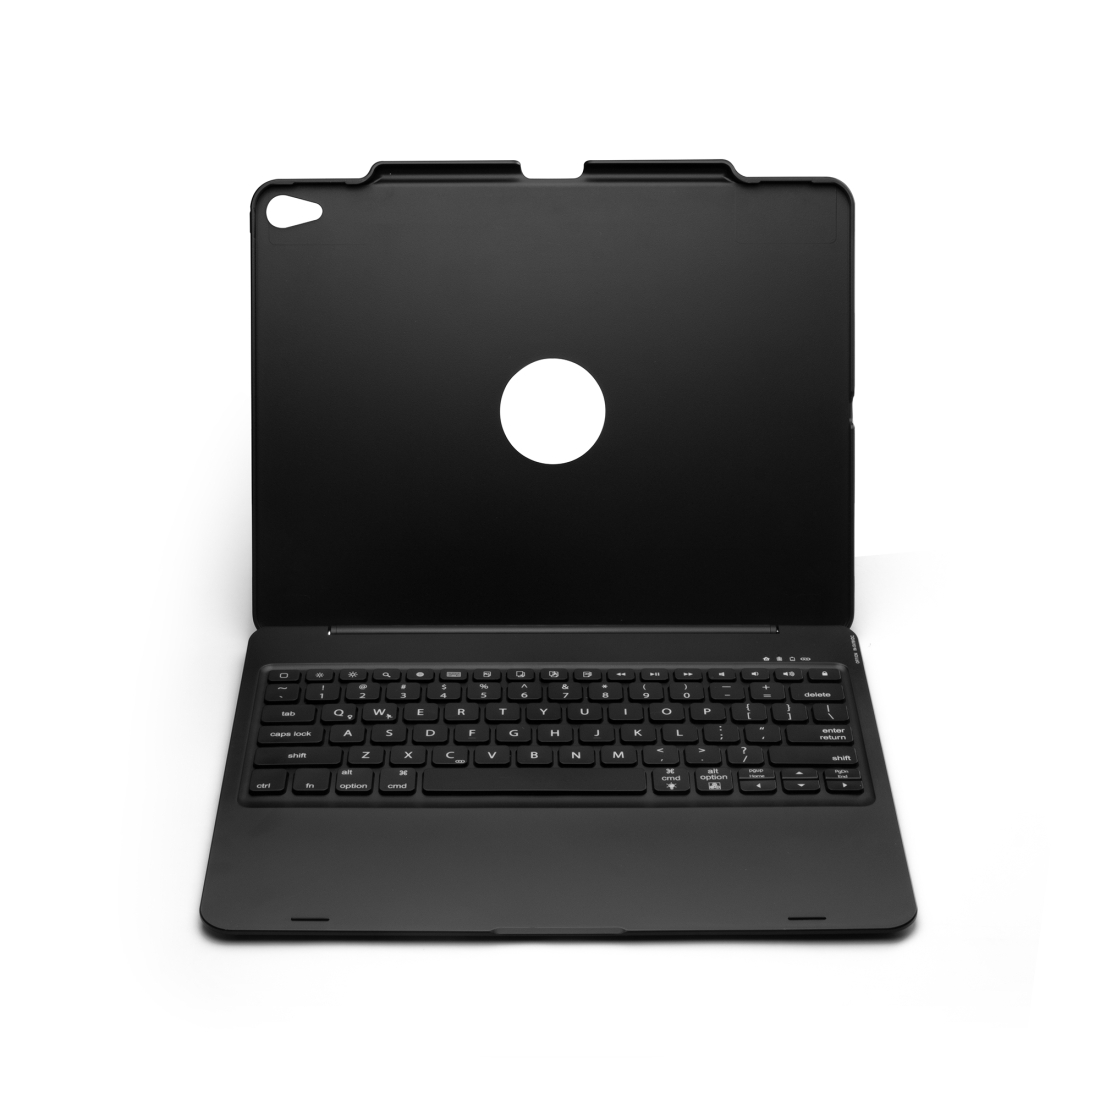 iPad Pro 12.9 Case With Keyboard (2018) With Leather Case & Backlit Keyboard (Black)